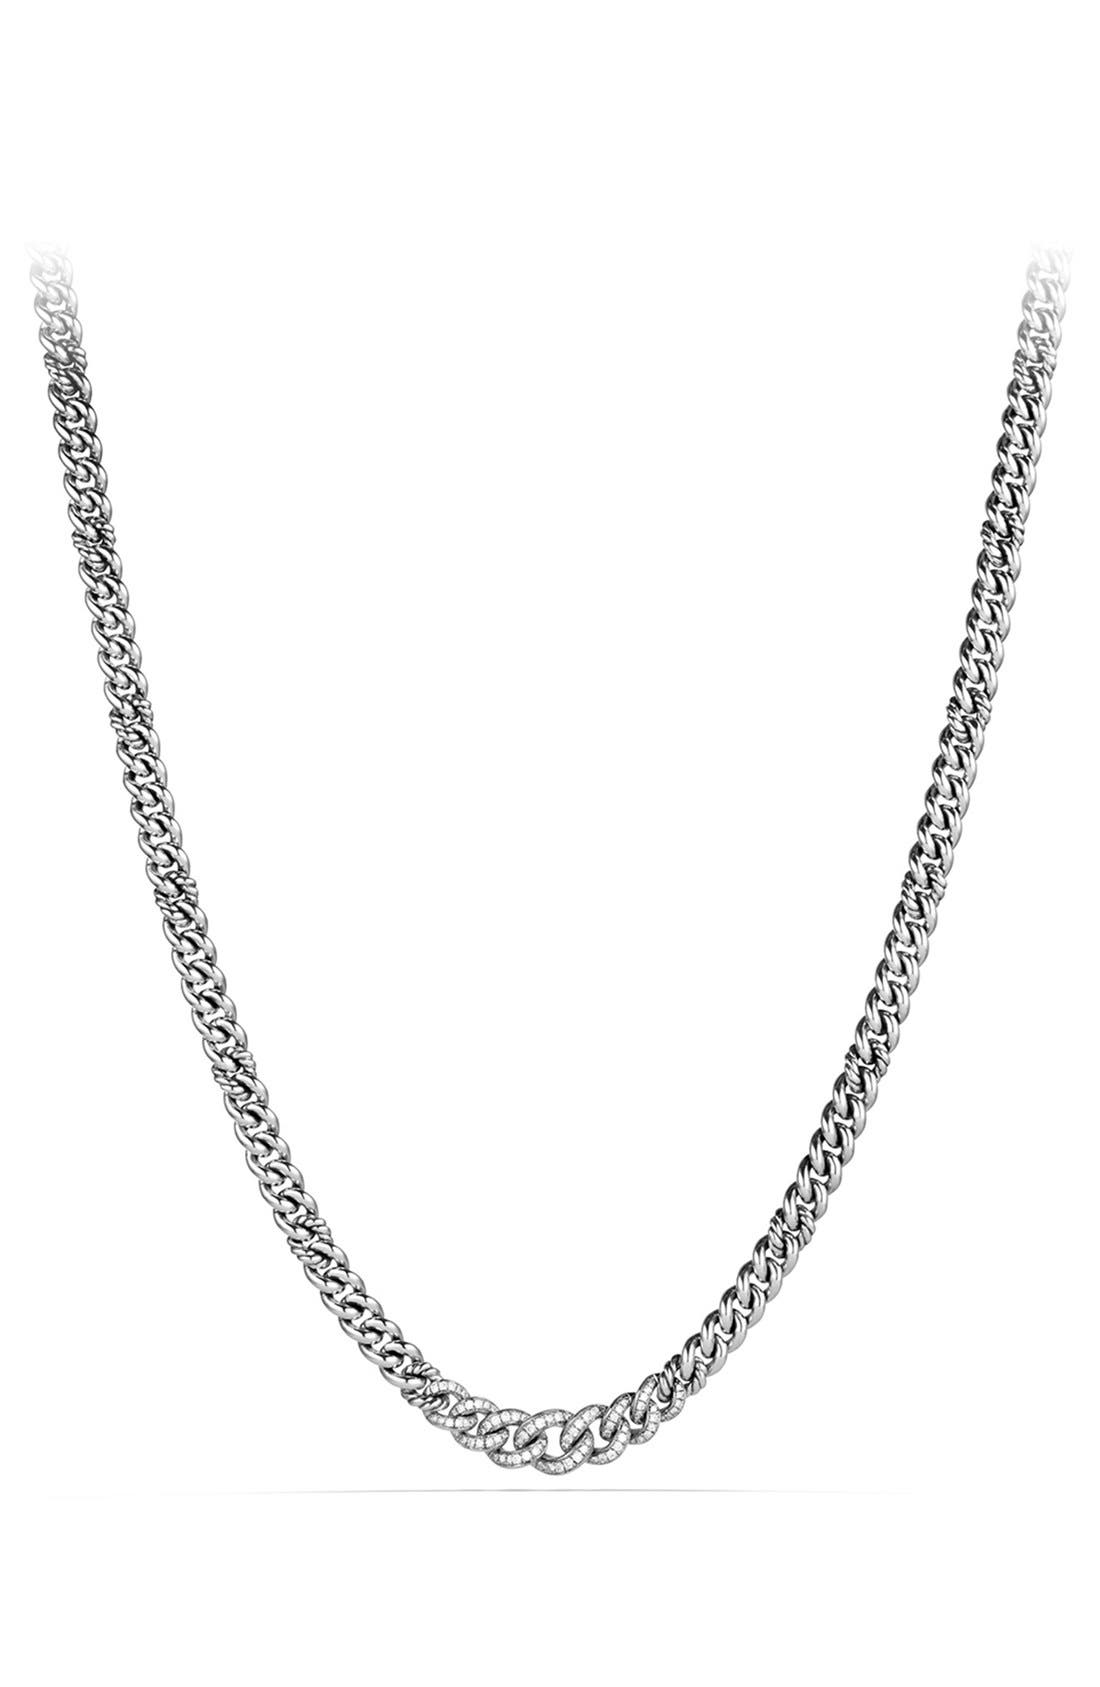 'Petite Pavé' Curb Chain Necklace with Diamonds,                             Main thumbnail 1, color,                             Diamond